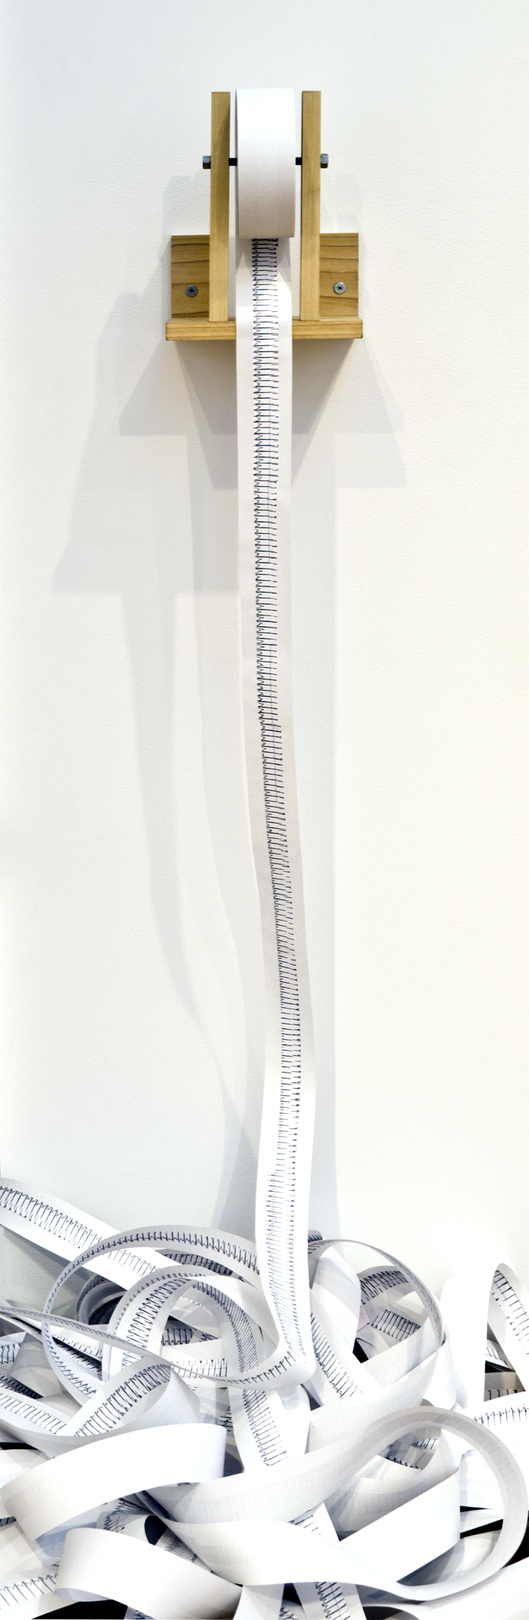 Linear Chronology.  Digital printout, receipt paper, wood, steel. 460 feet by 5 feet (dimensions variable). 2012.